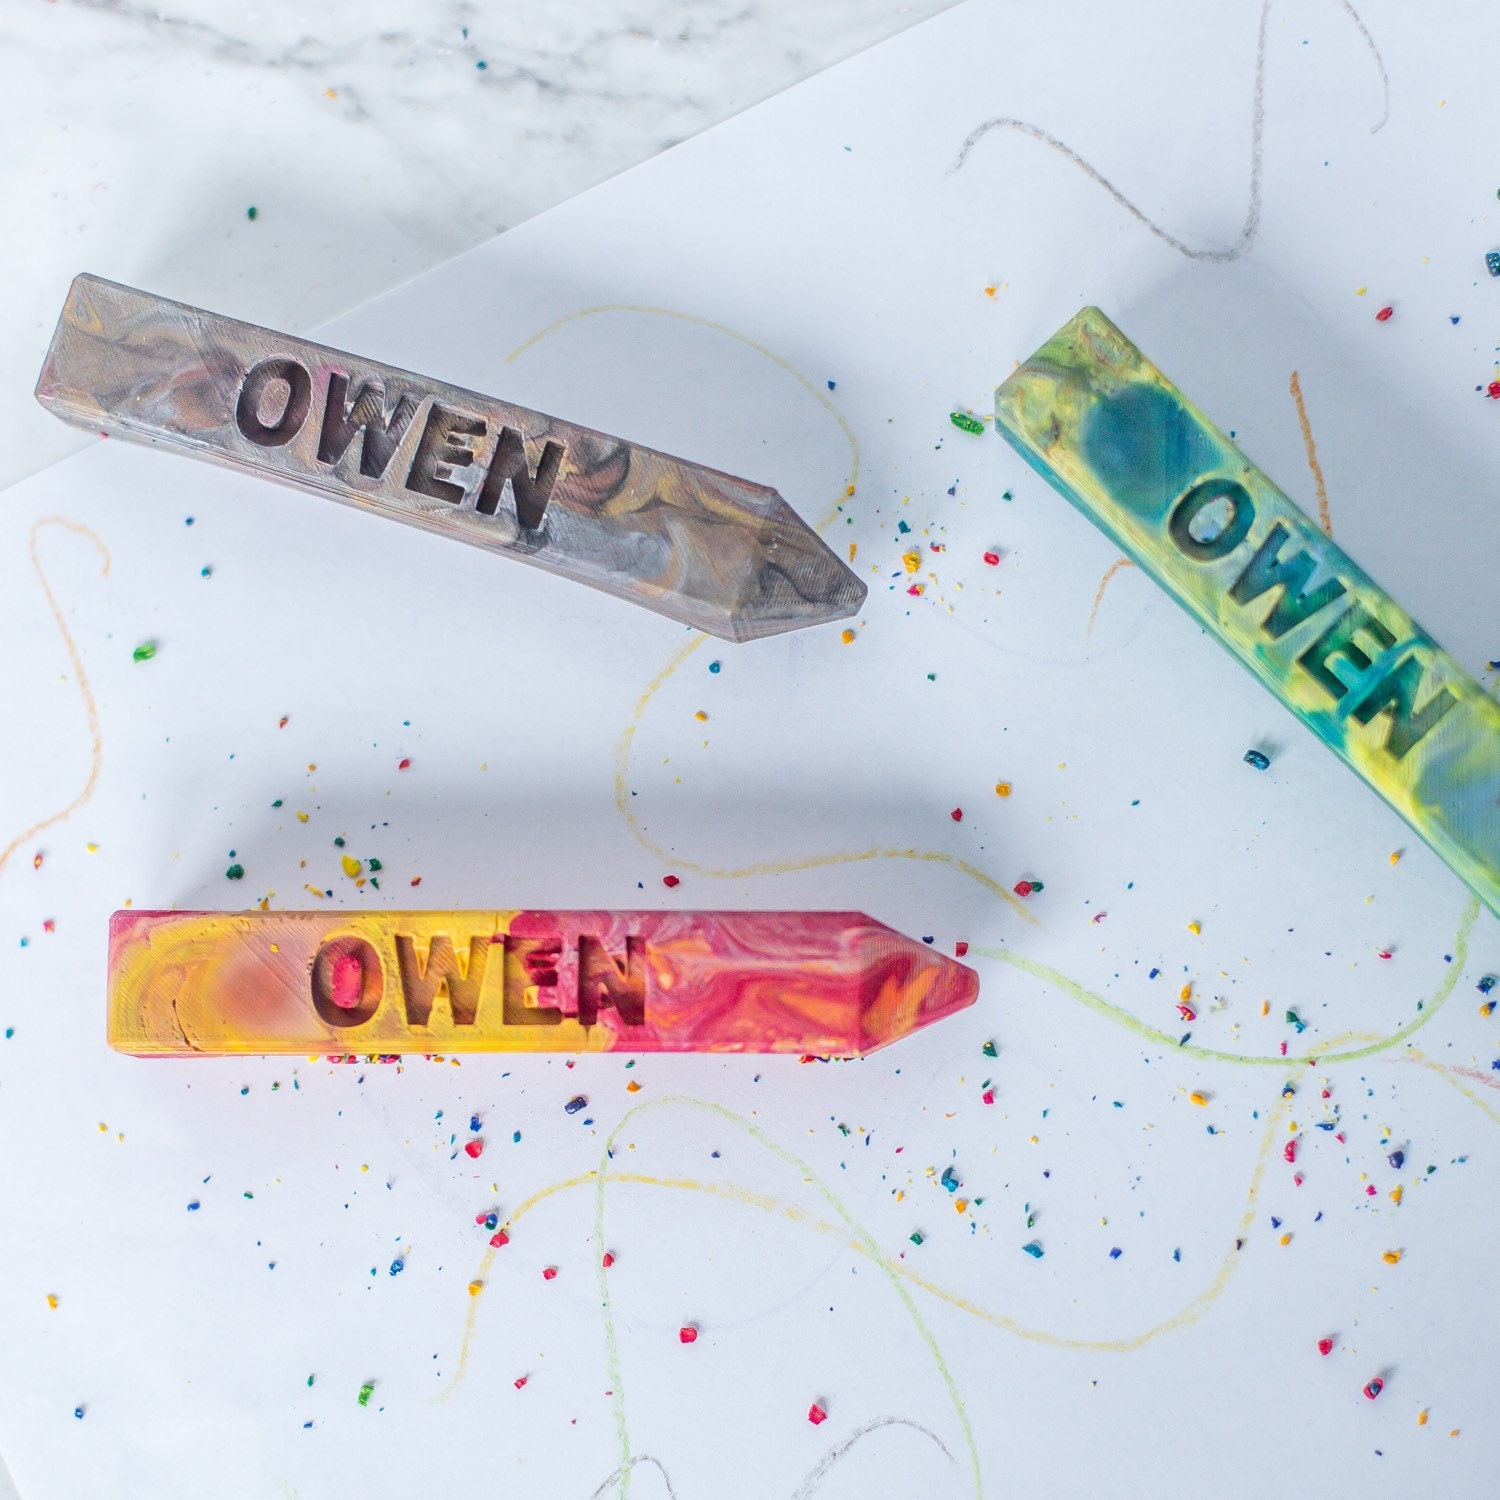 studio childrens room decor crayola crayons no 8 by.htm personalized crayon gift for kids large stix crayon set with etsy  personalized crayon gift for kids large